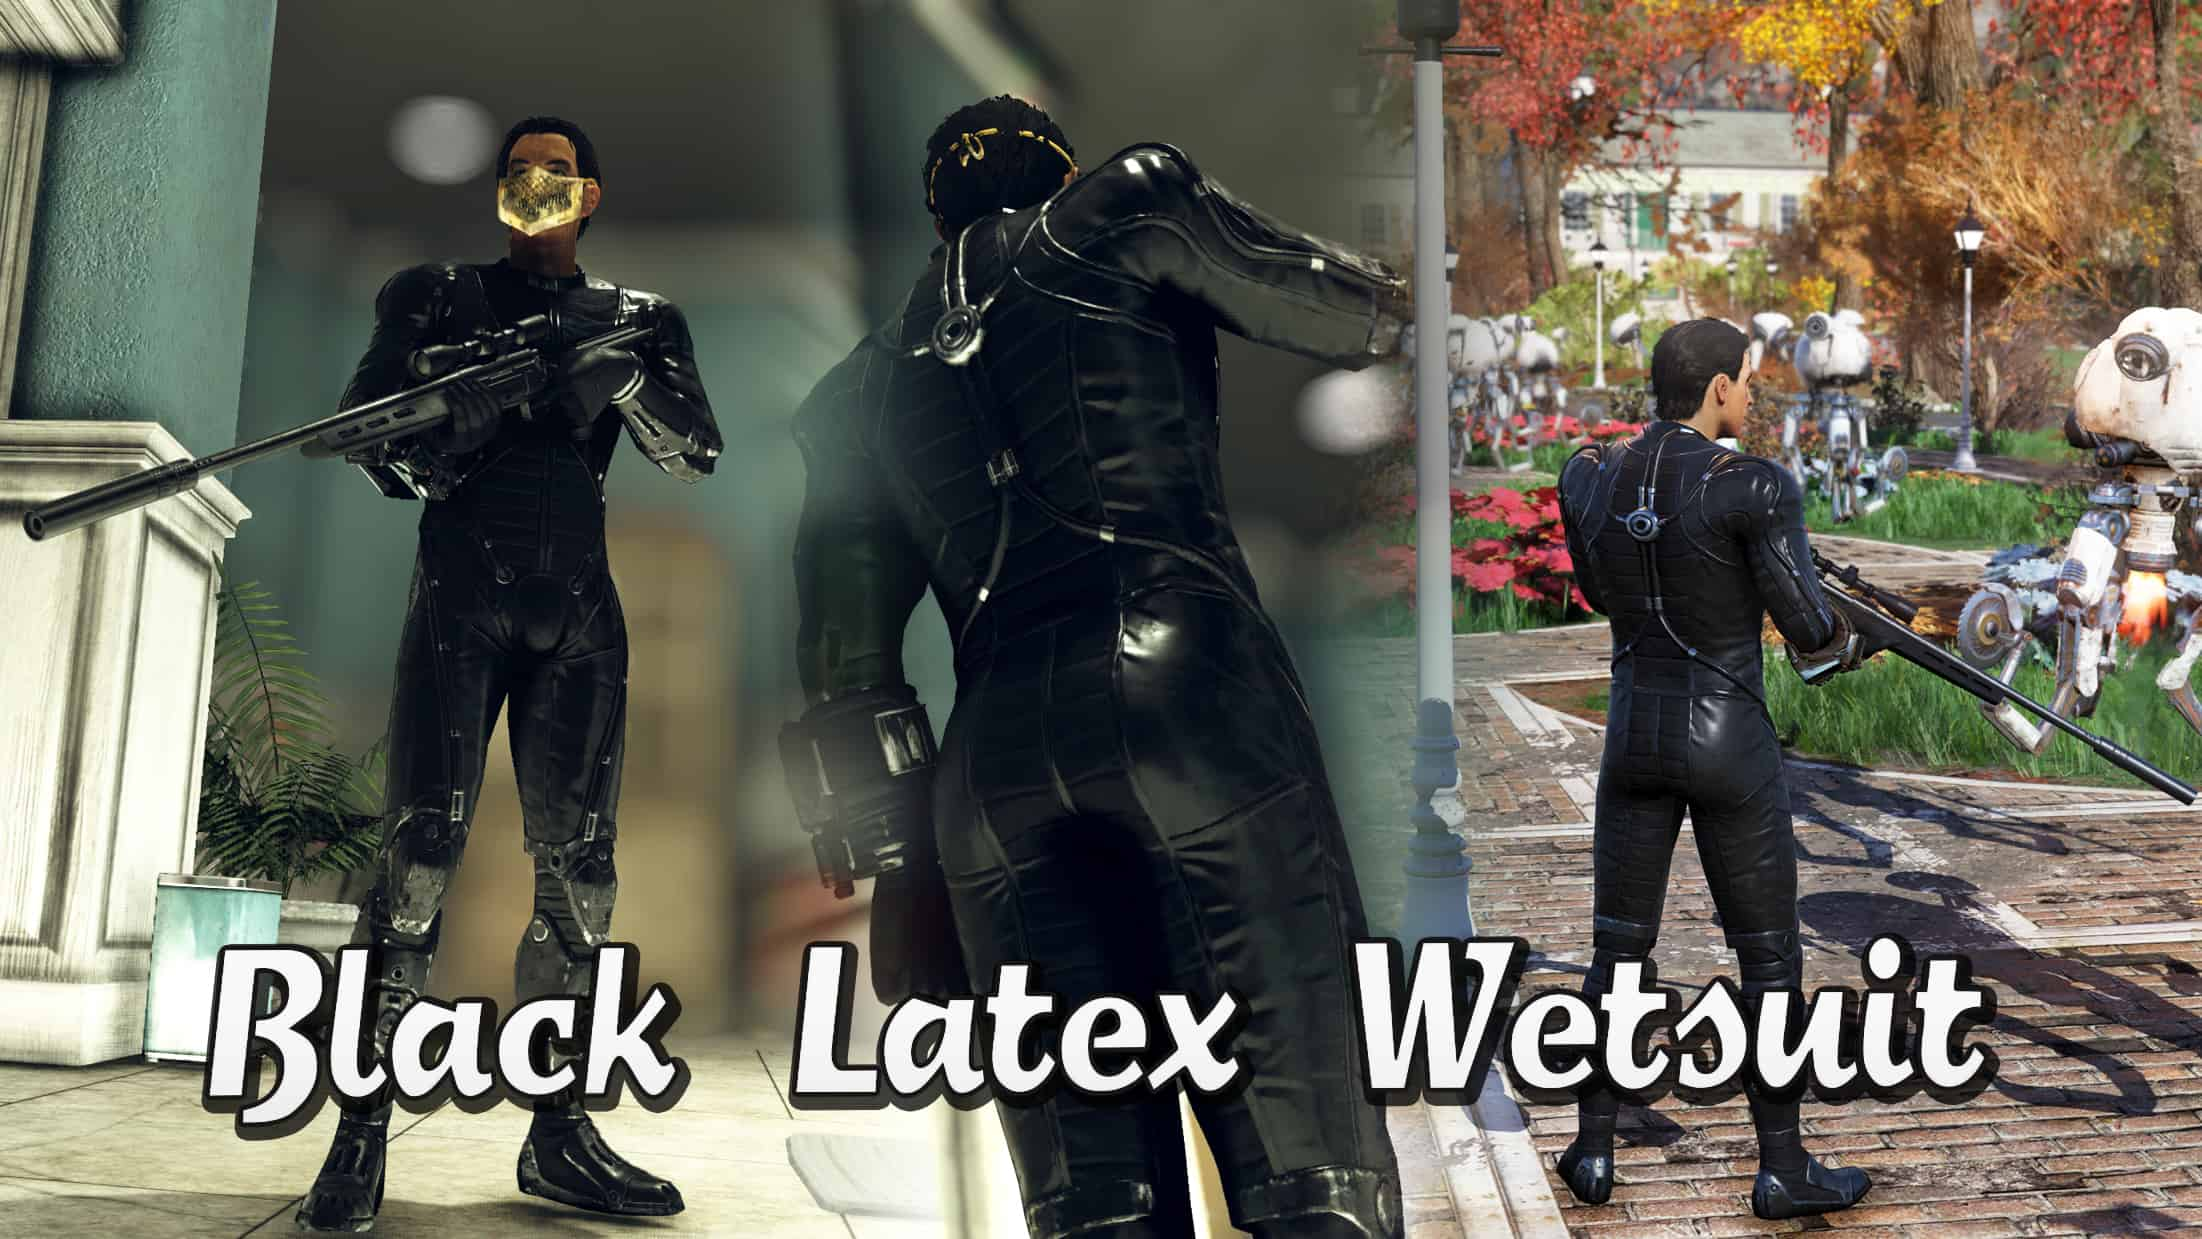 Black Latex Wetsuit - Fallout 76 Mod download